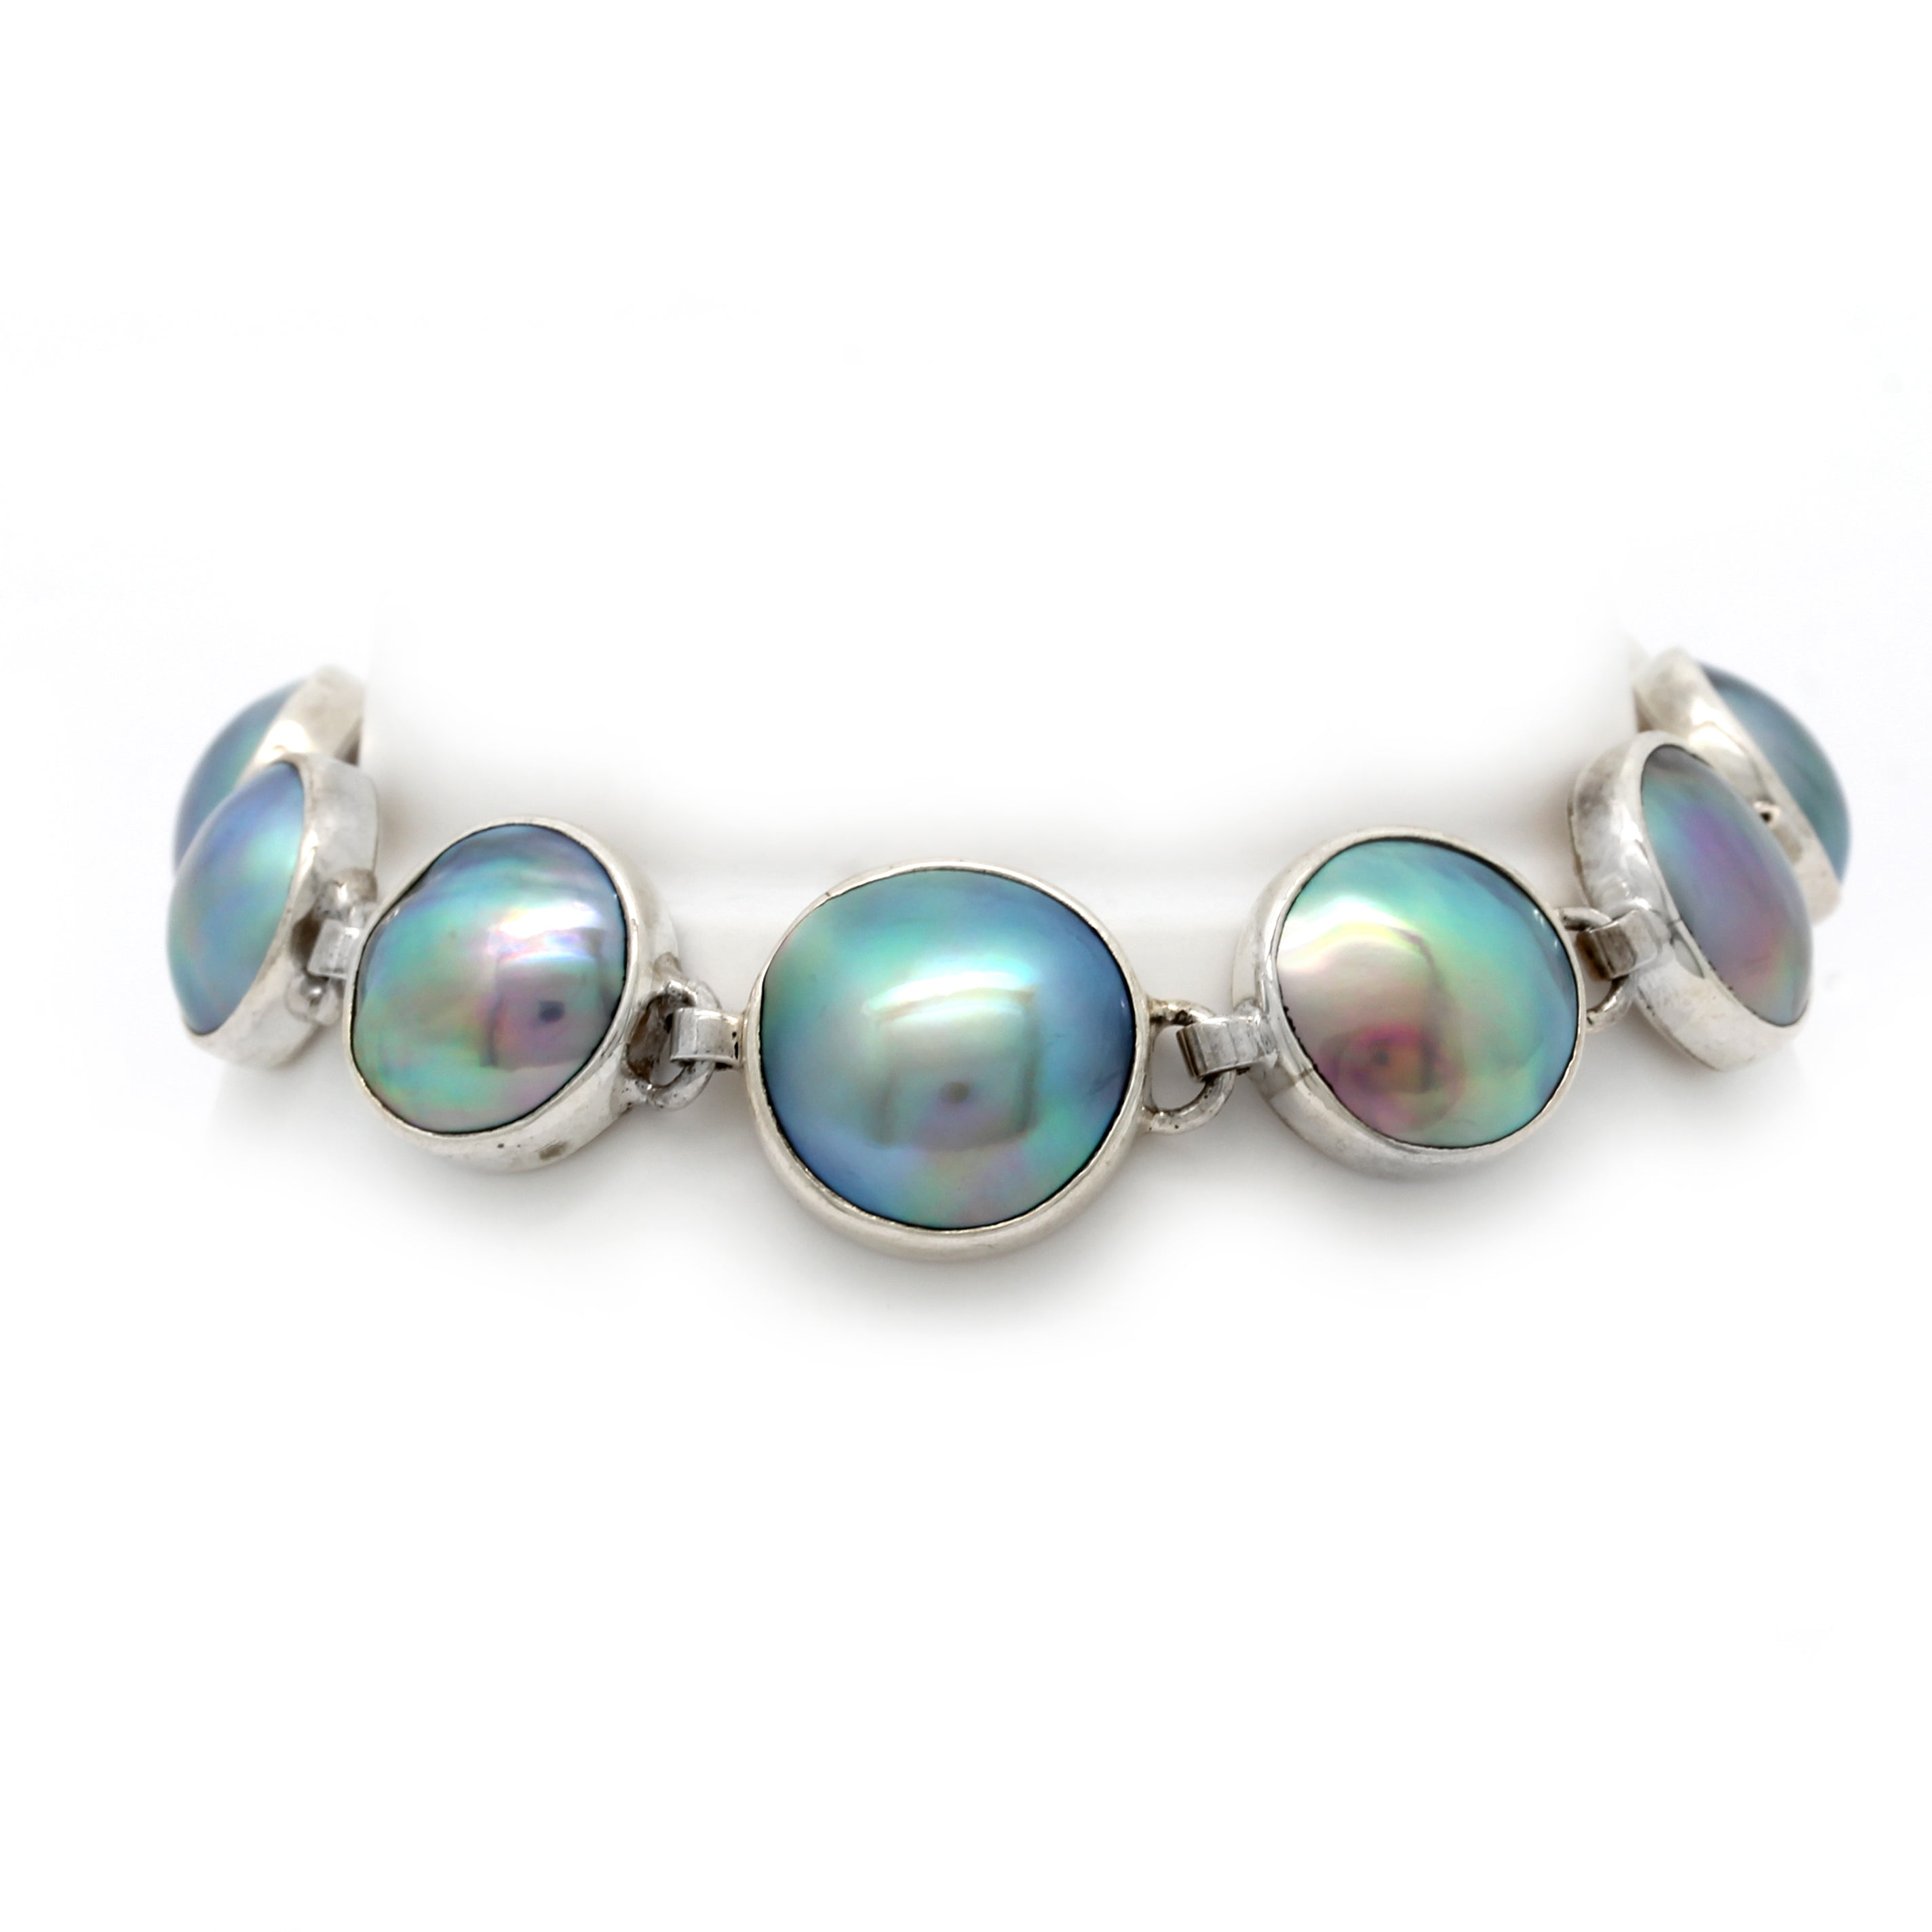 Sea of Cortez Mabe Pearl Bracelet